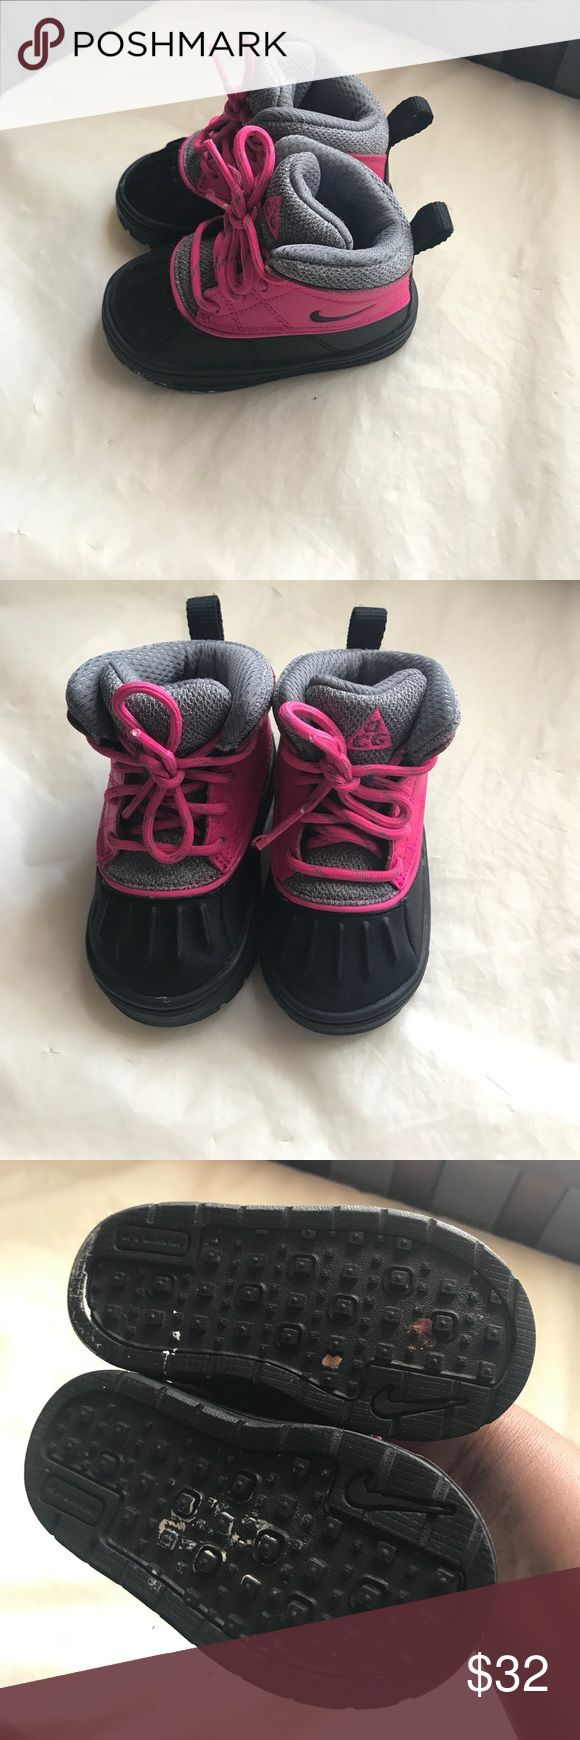 Toddler Girl Boots Gently worn toddler boots Nike Shoes Boots